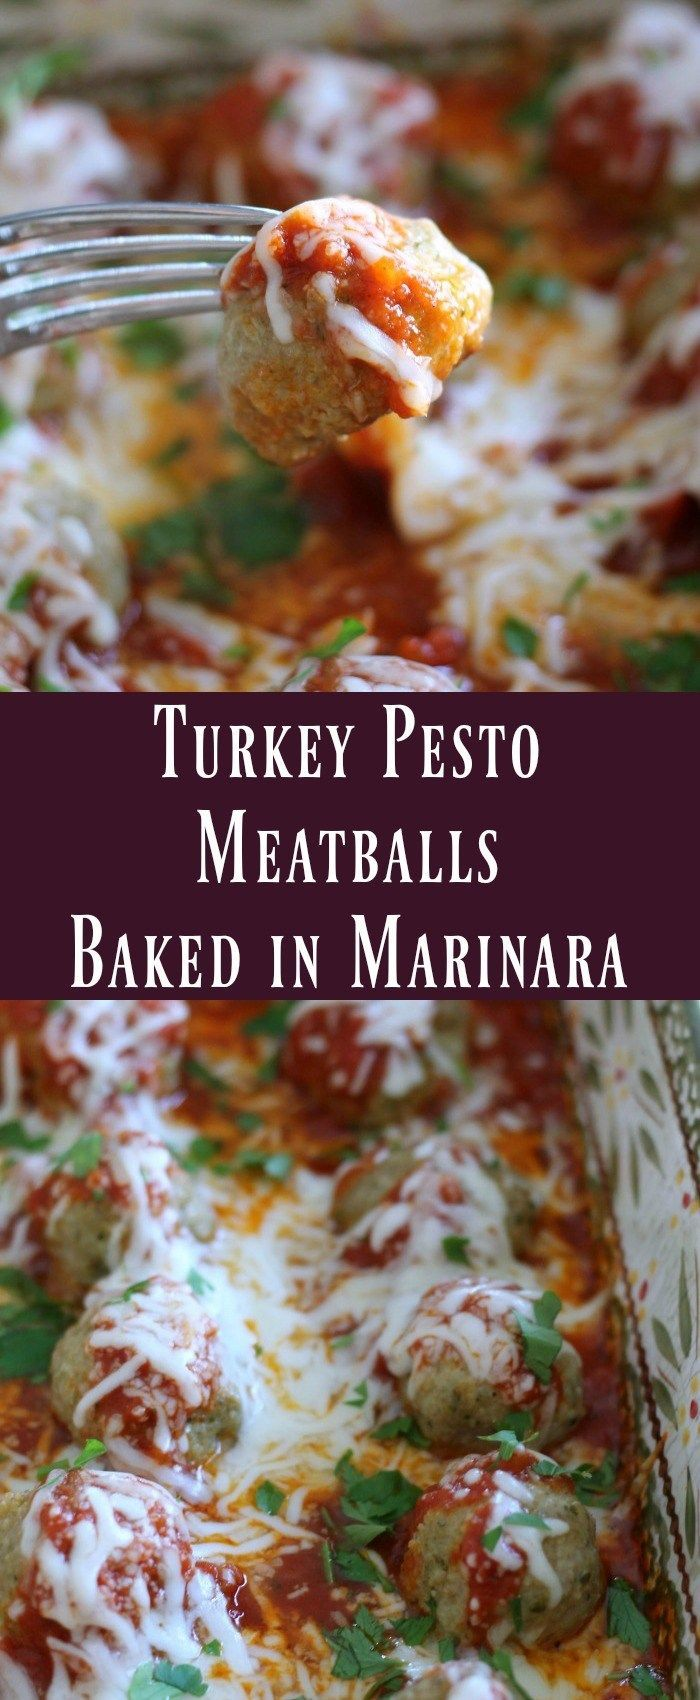 Turkey Pesto Meatballs Baked In Marinara  Tender turkey meatballs mixed with pesto and baked in a marinara sauce. Skip the pasta and enjoy this as a low-carb meal!